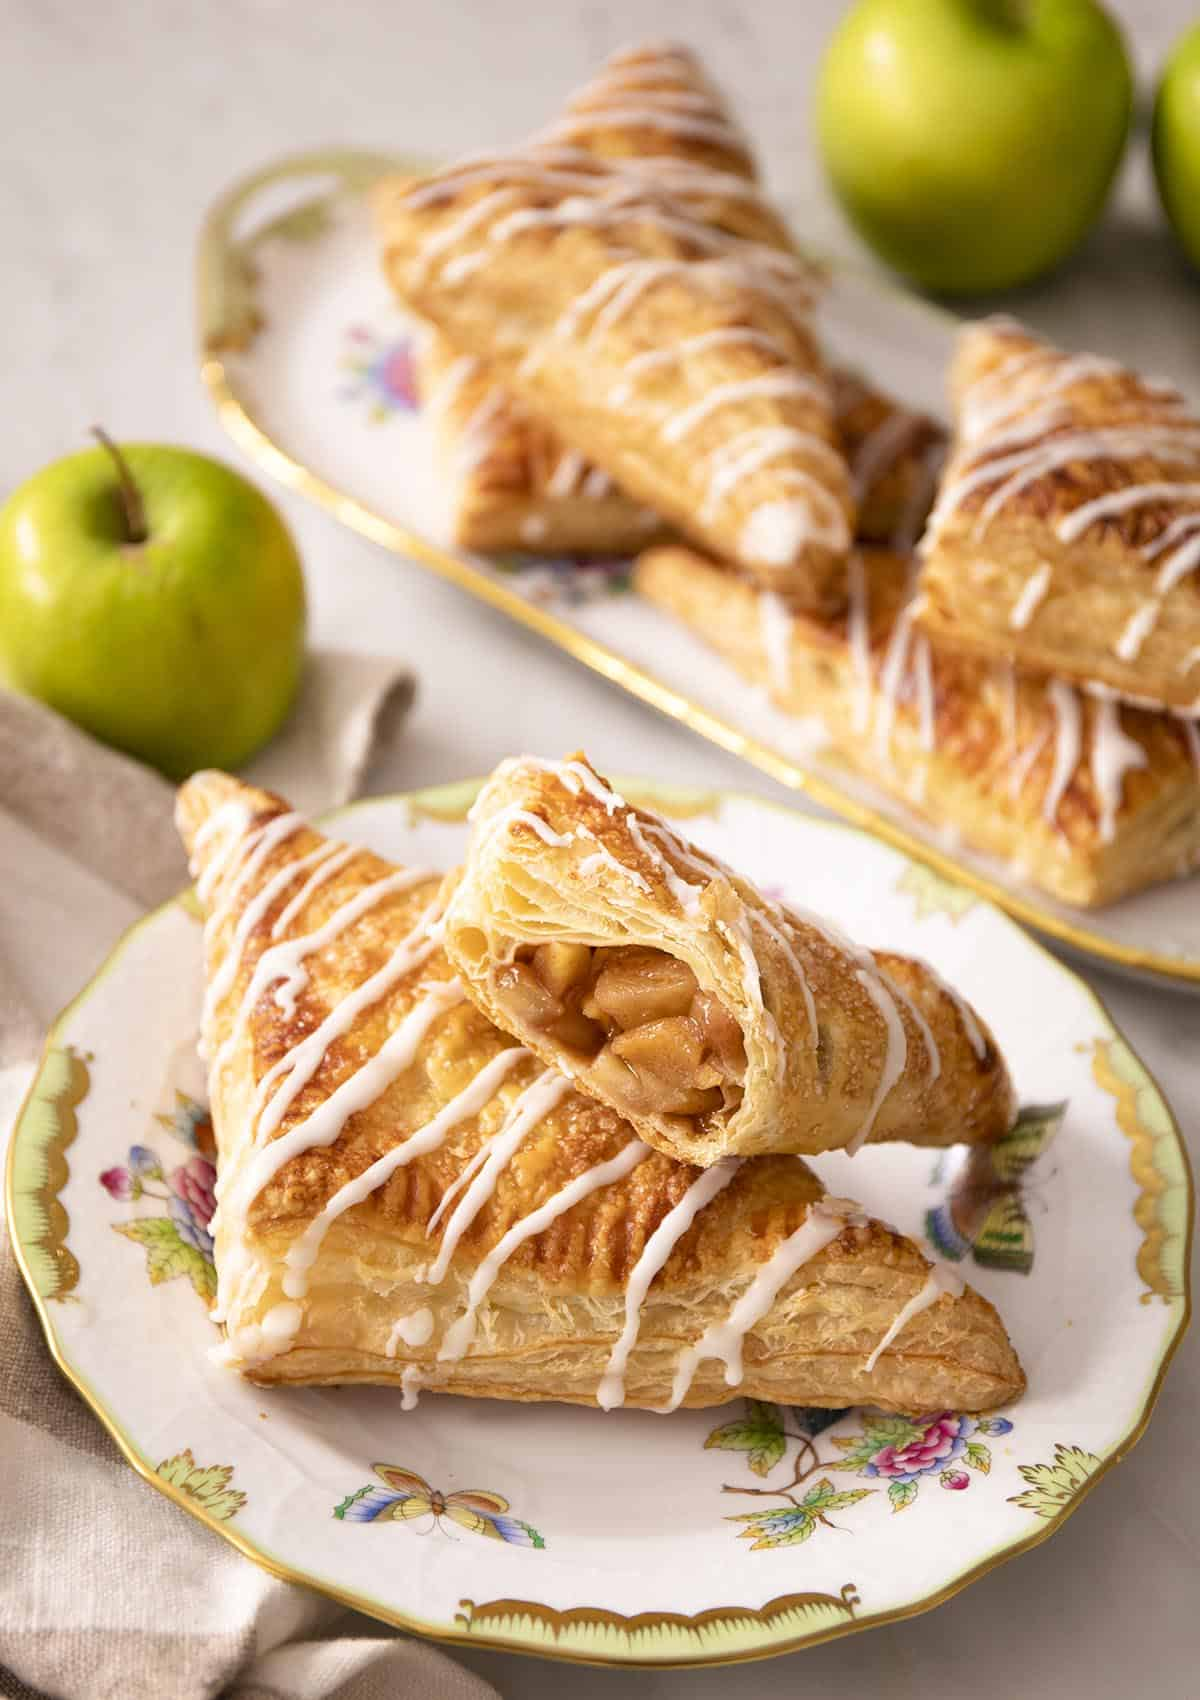 Apple turnovers on a porcelain plate next to green apples.